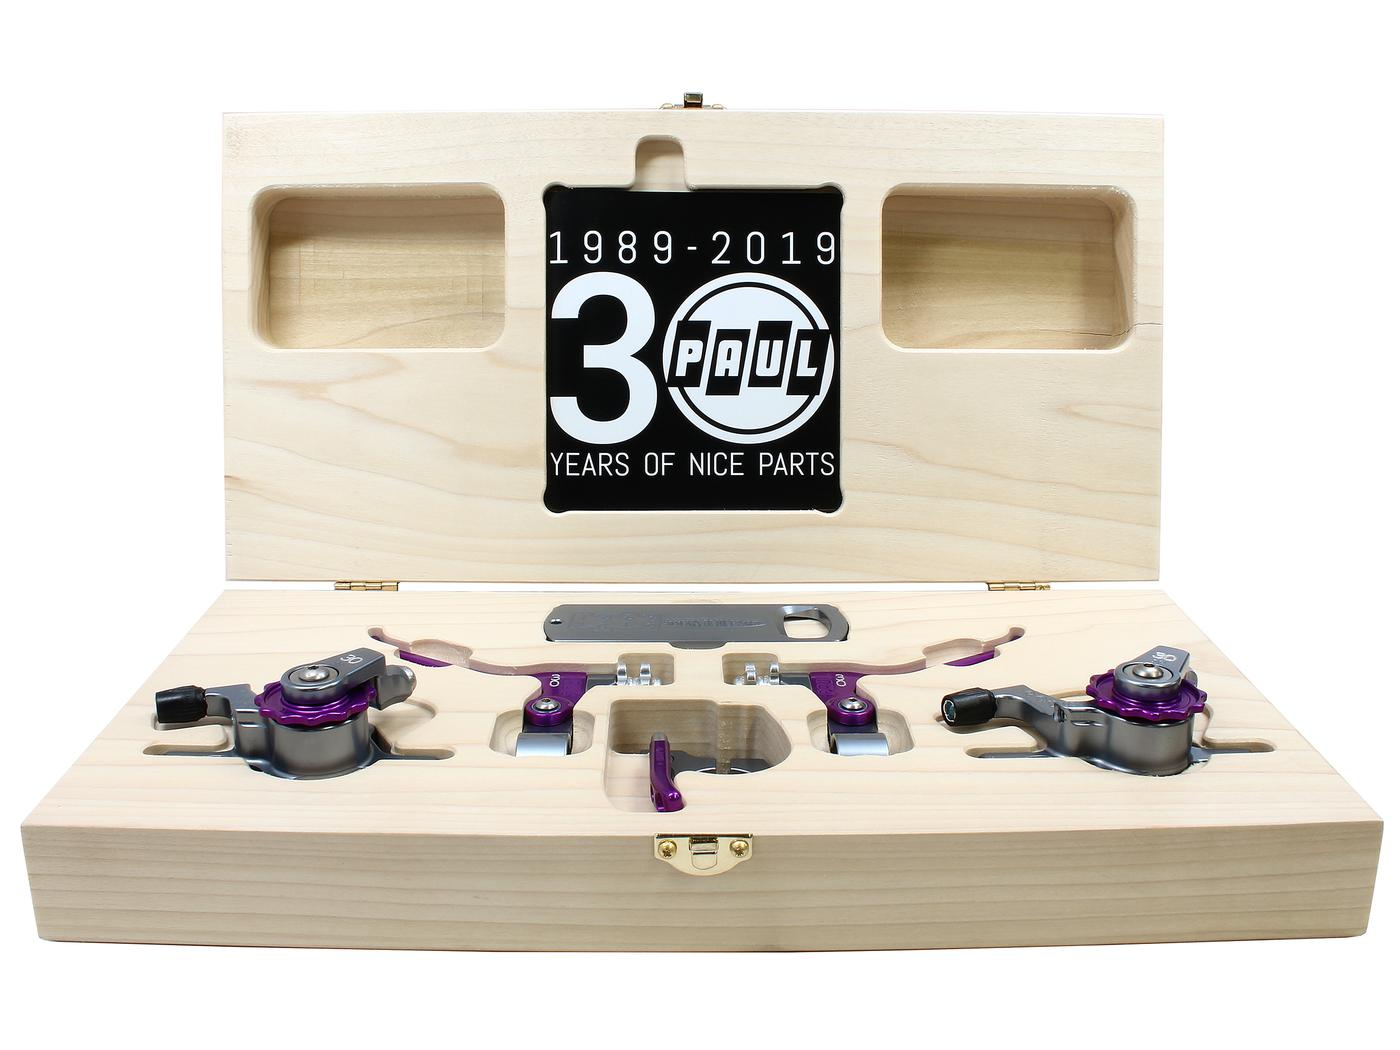 Paul Component Engineering's Limited Edition 30th Anniversary Box Set!